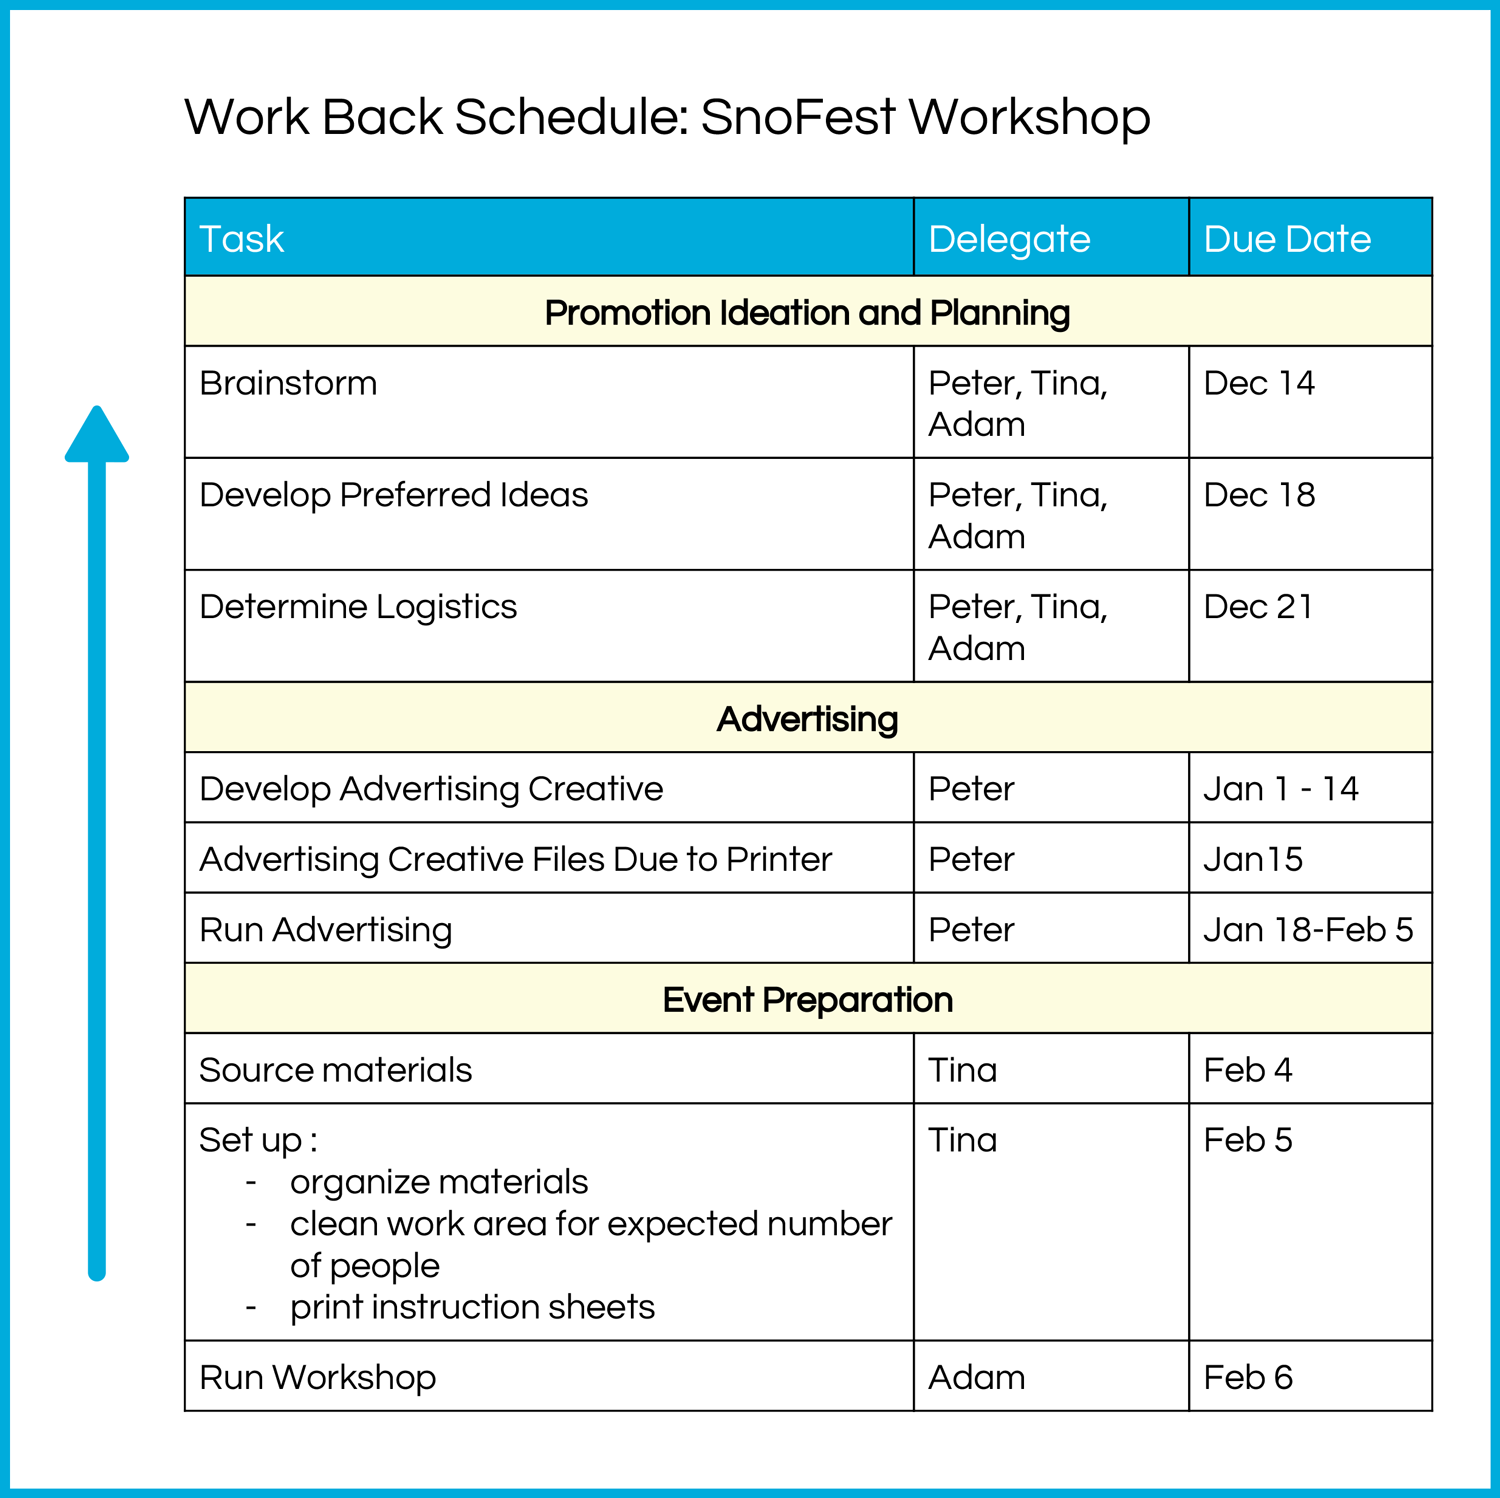 This is a sample basic work back schedule.